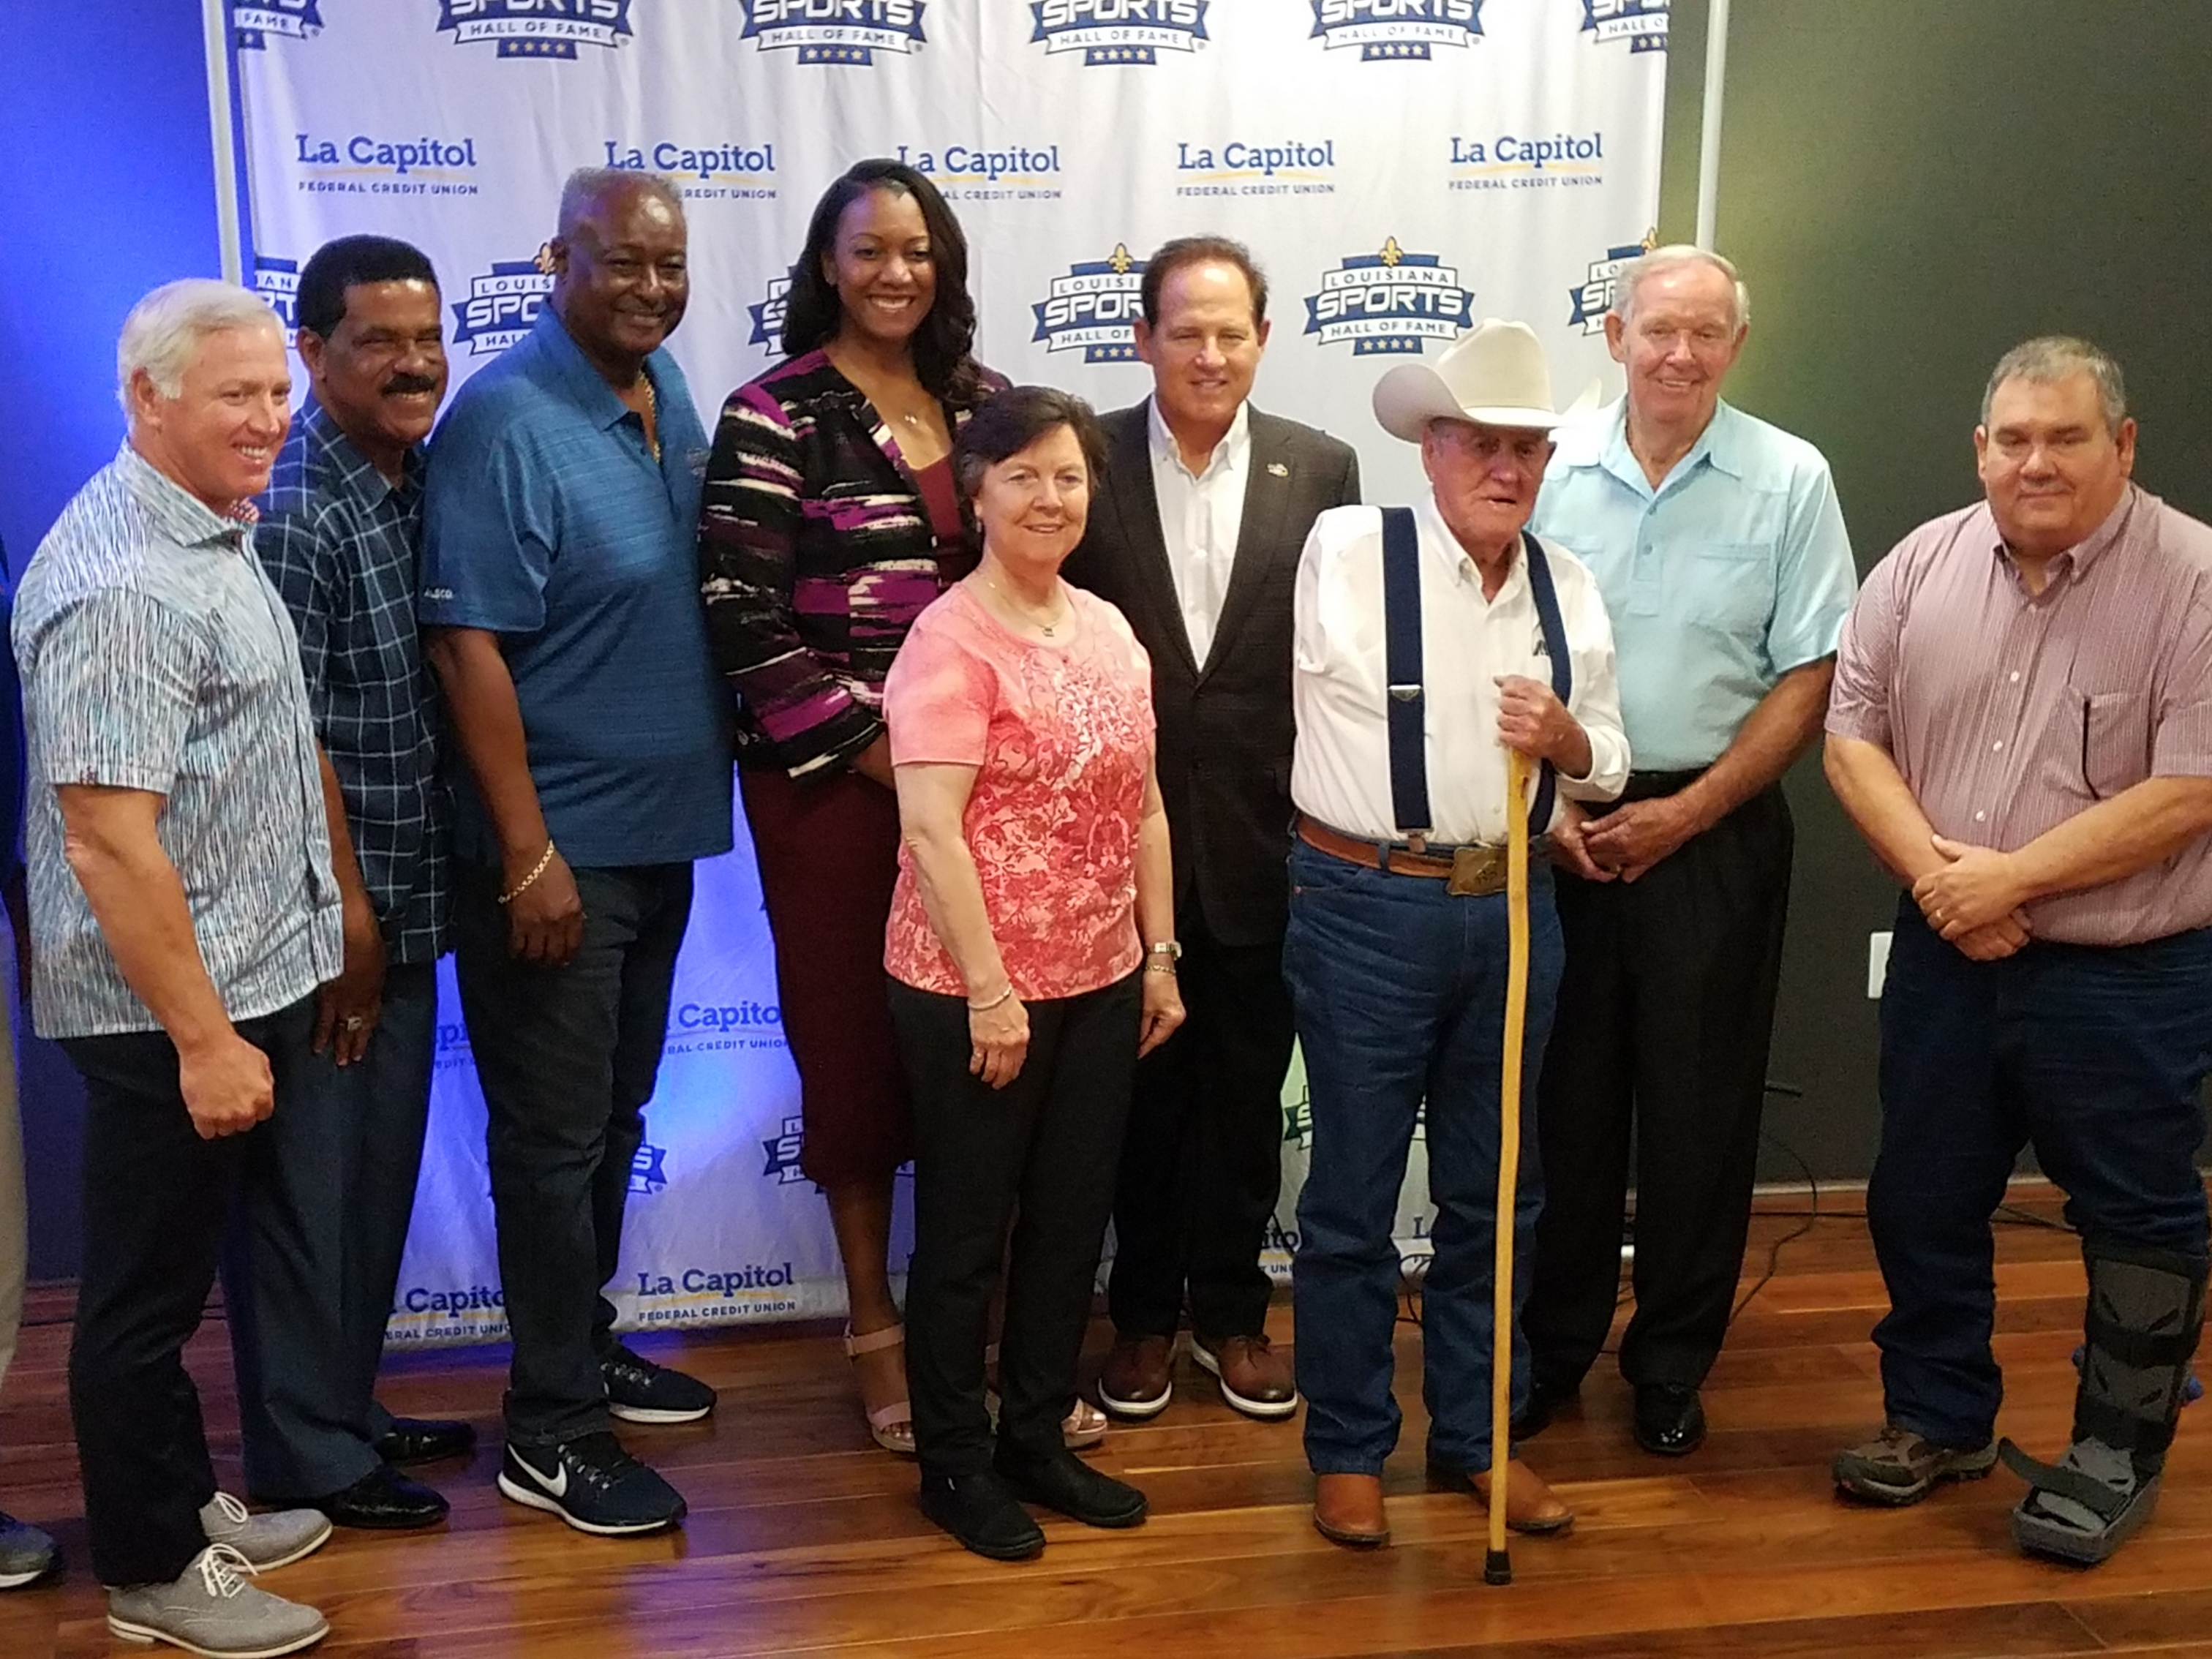 2019 Hall of Fame inductees a grateful, humble group